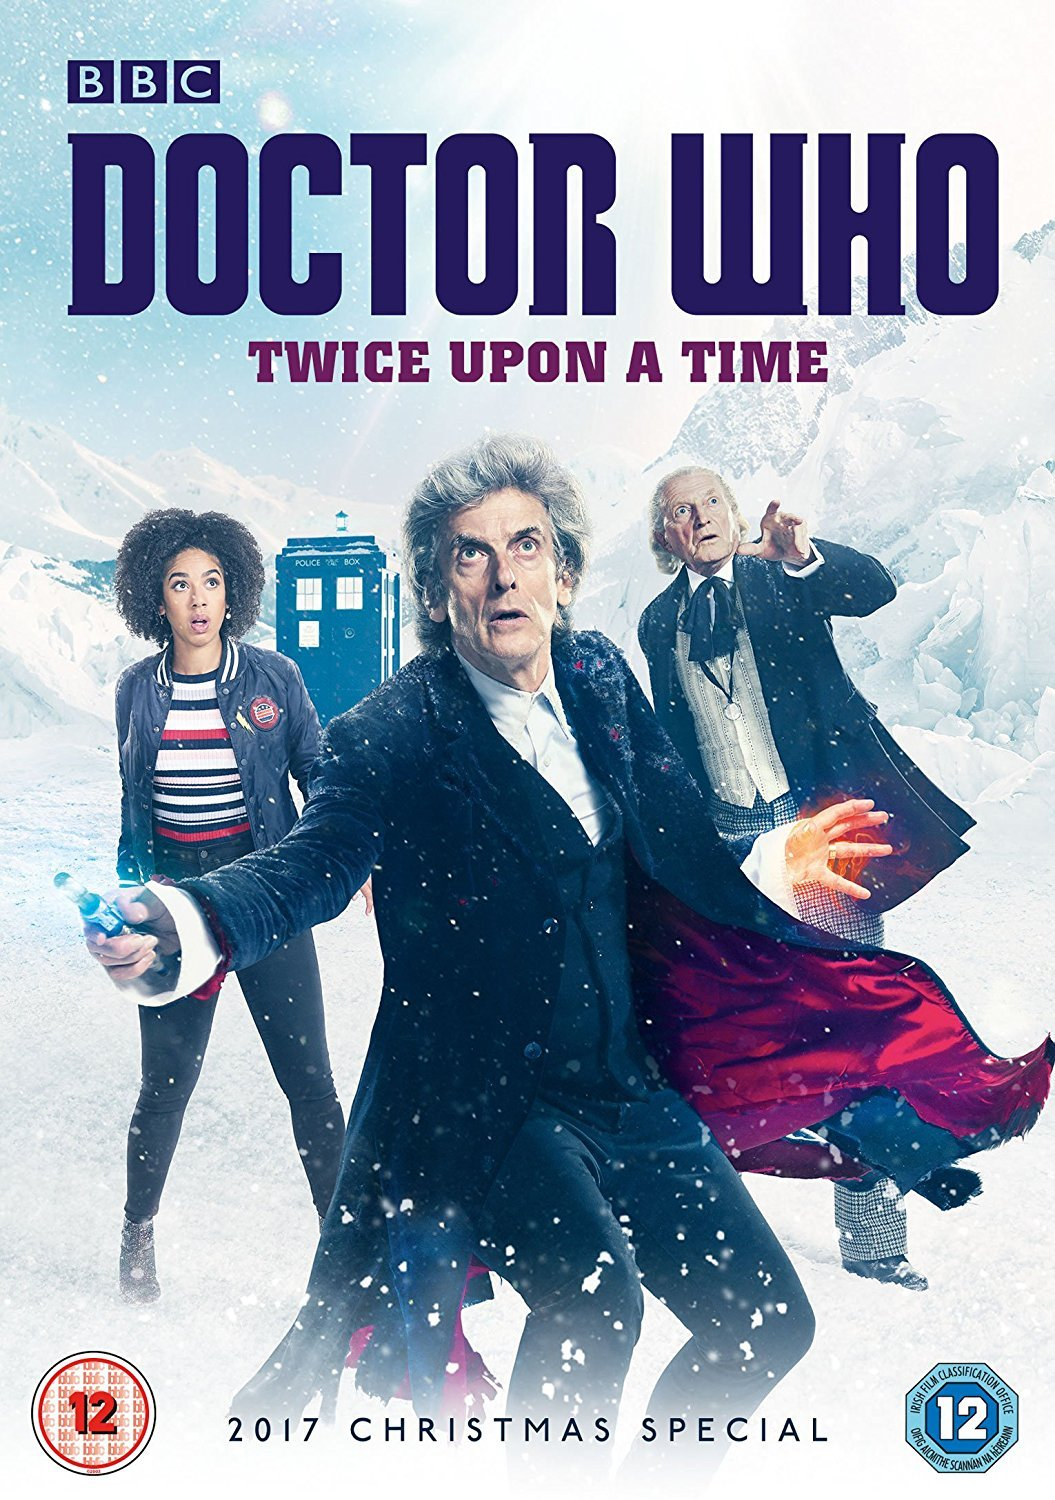 Doctor Who Christmas Special 2017 - Twice Upon A Time UK